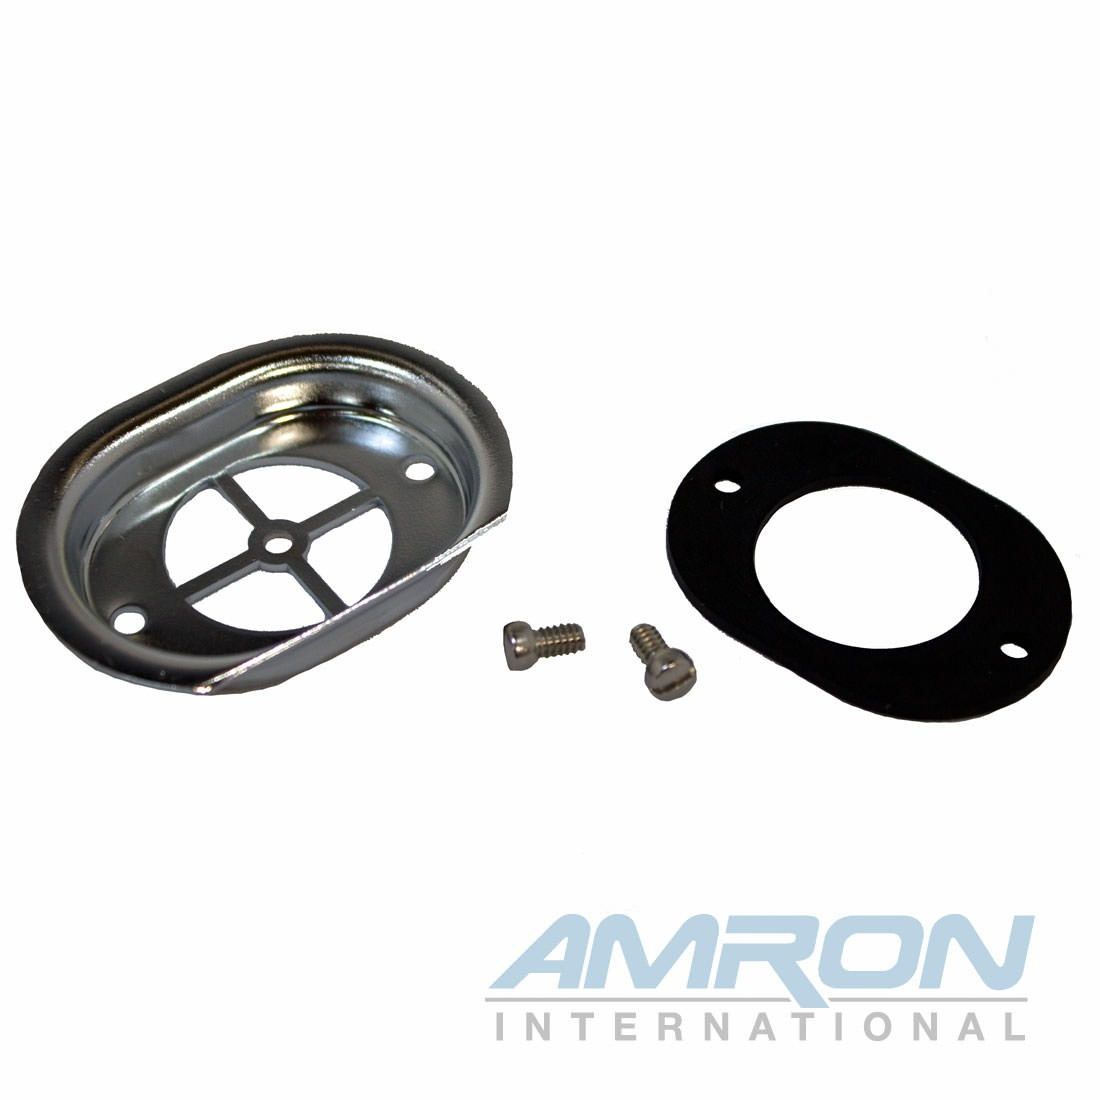 Kirby Morgan 525-027 Regulator Flange Kit